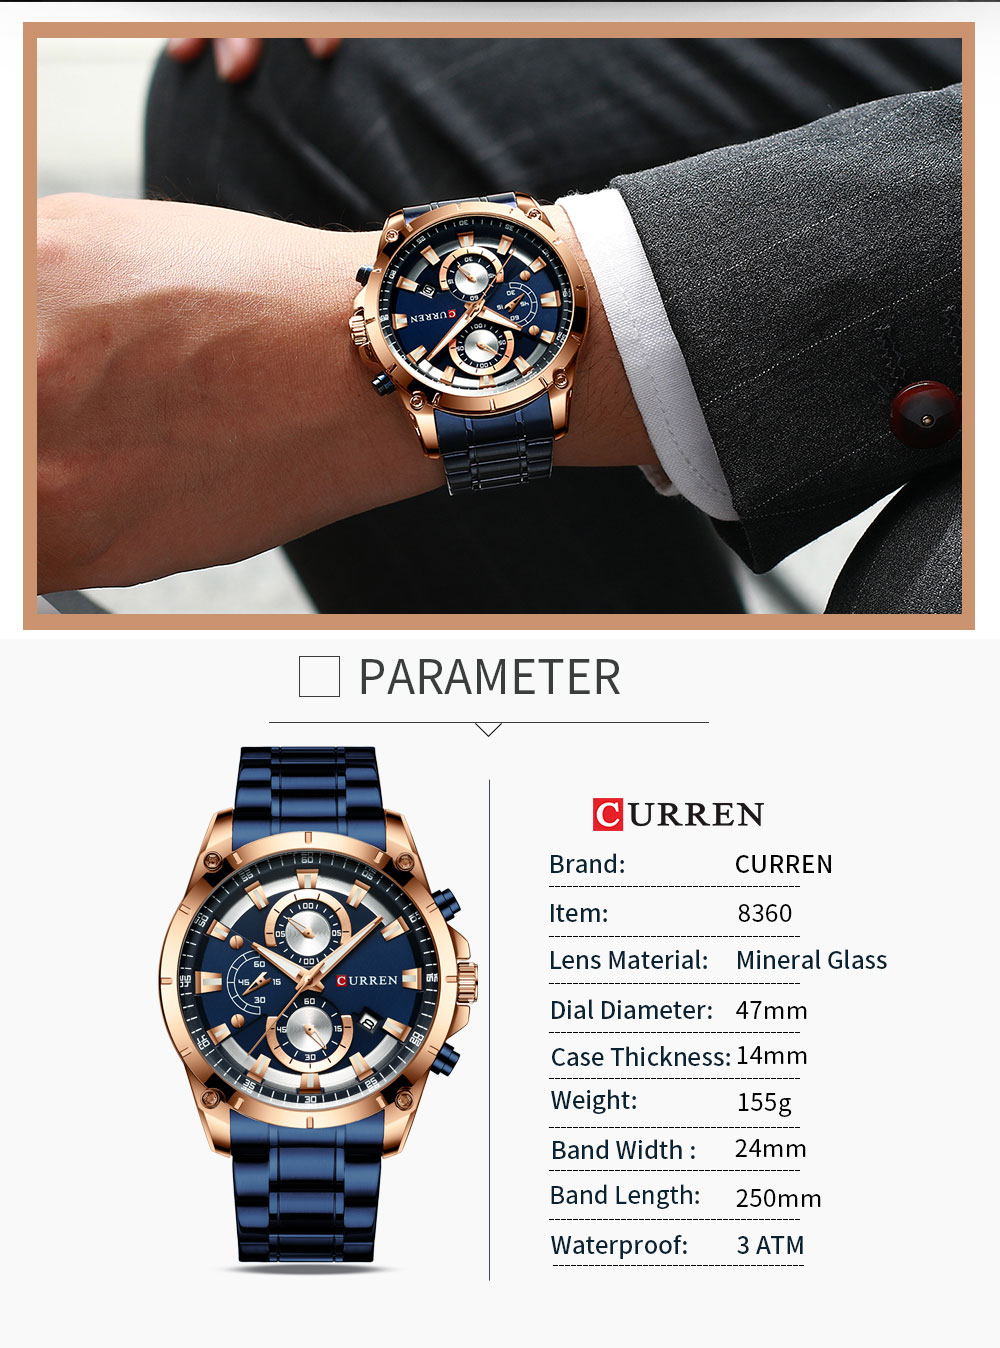 Hd59c5119bb344d3598aa4f96b9977eb67 - CURREN Top Brand Luxury Men Watches Sporty Stainless Steel Band Chronograph Quartz Wristwatch with Auto Date Relogio Masculino